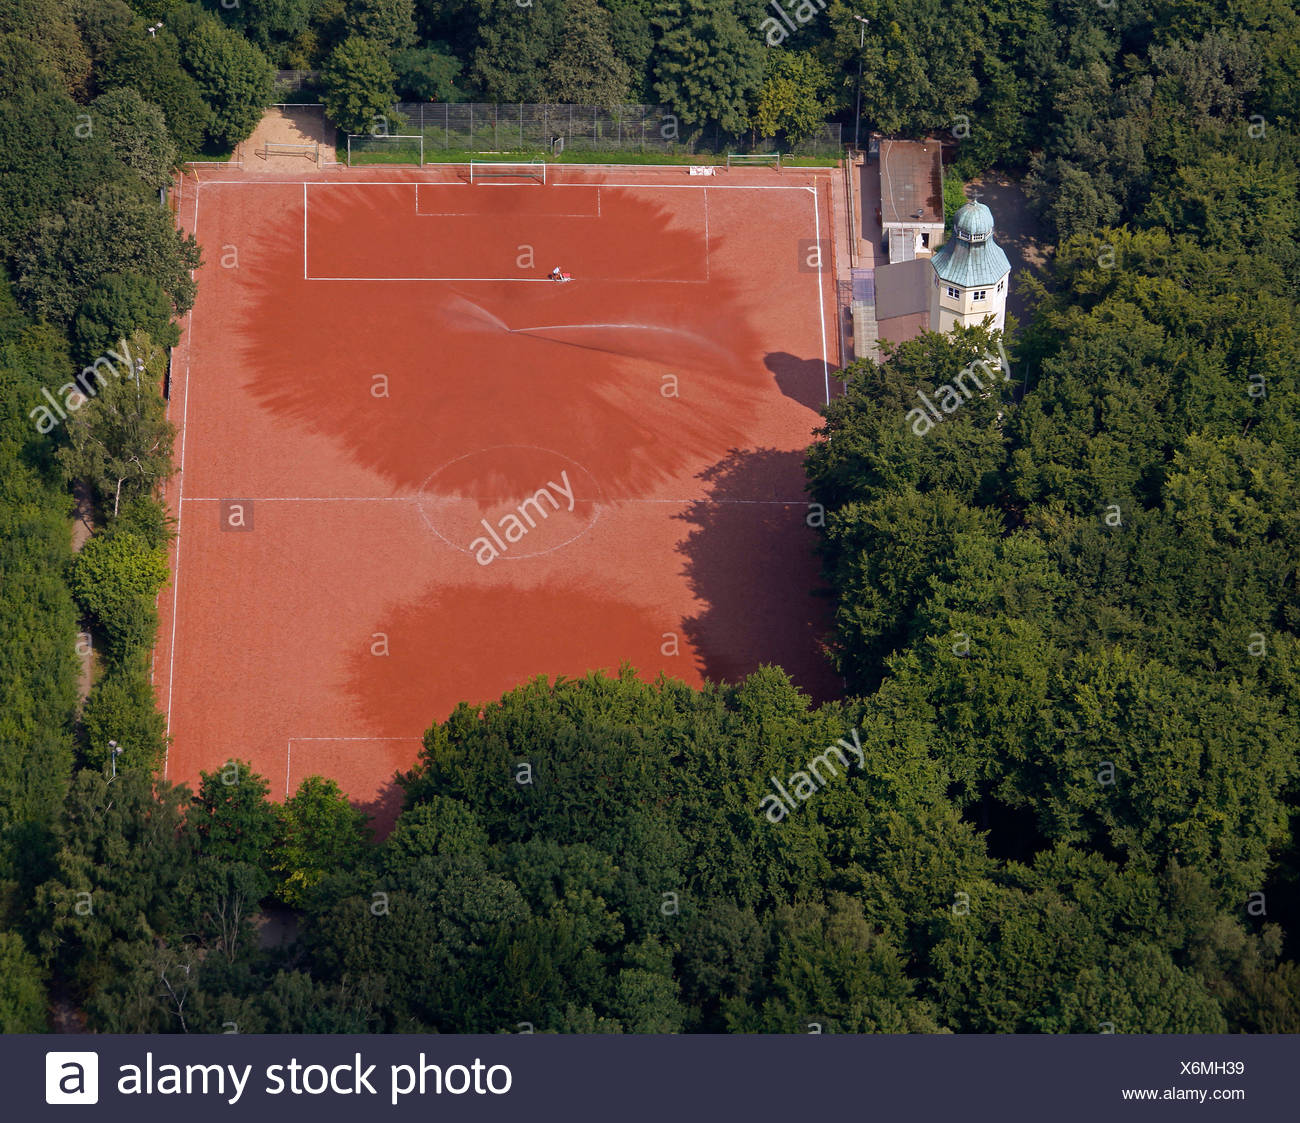 Aerial view, Volkspark park and a sports field, Herne, Ruhr area, North Rhine-Westphalia, Germany, Europe - Stock Image